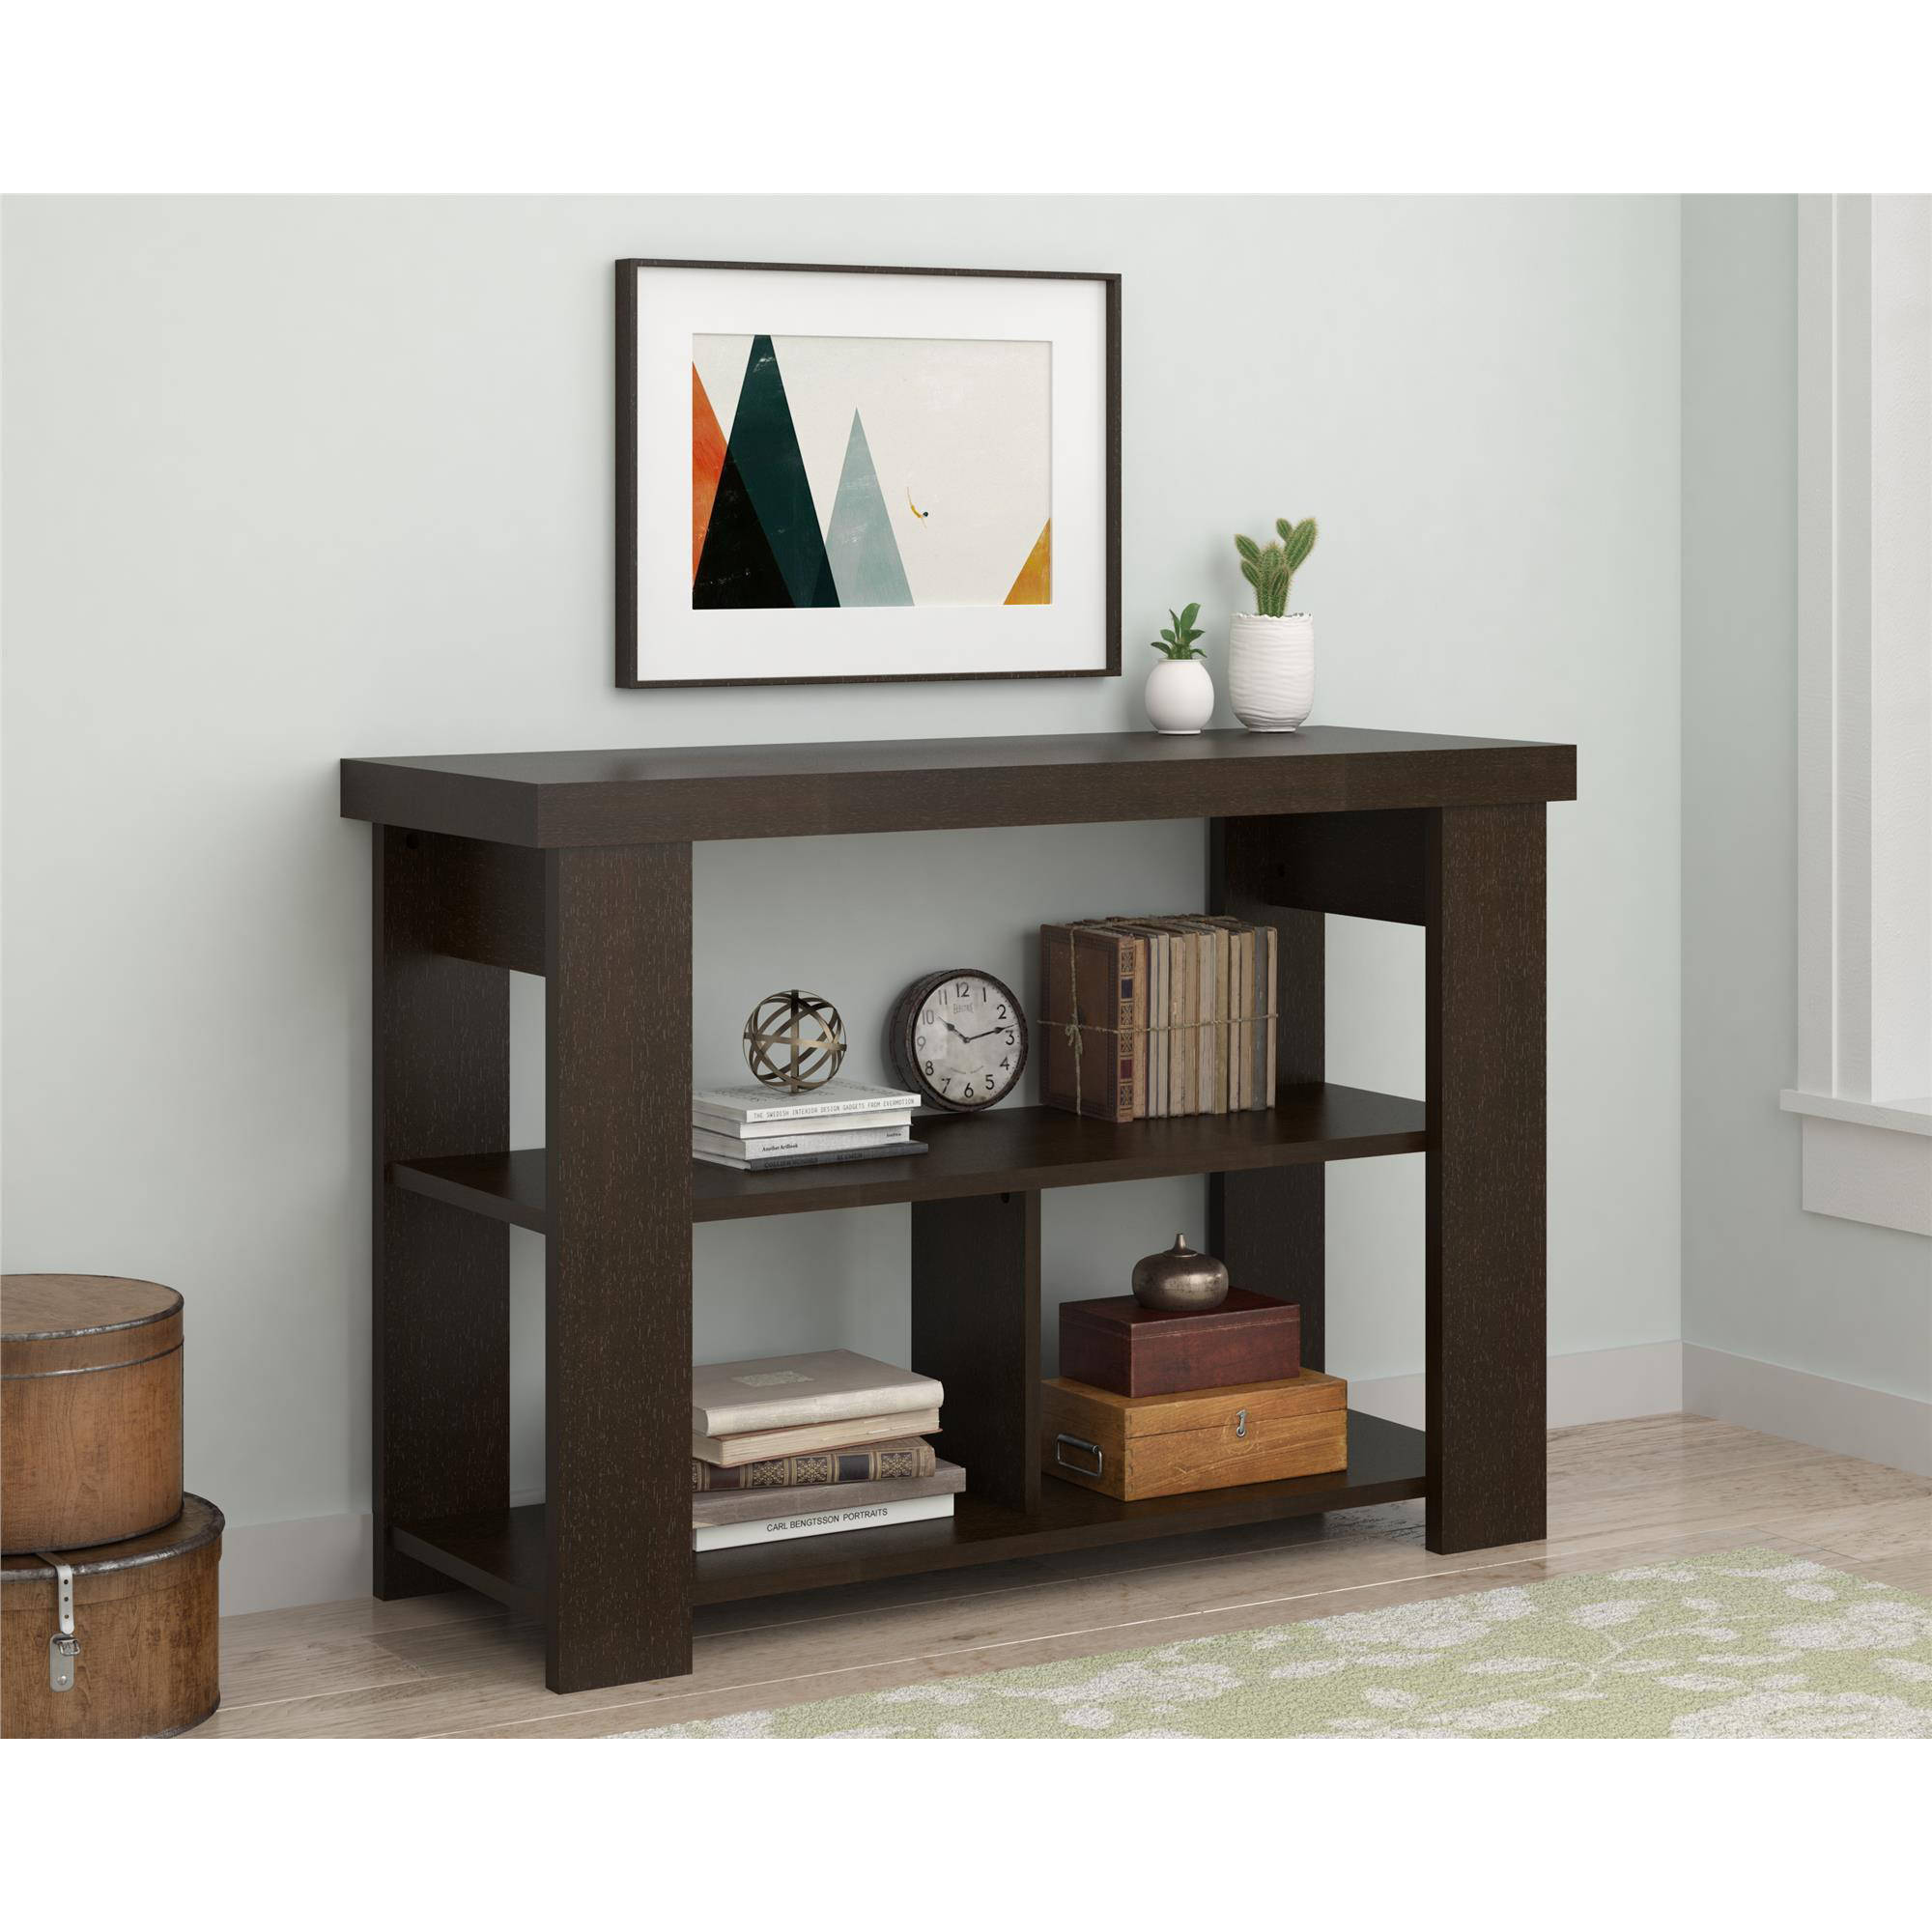 Ameriwood Home Larkin Console Table Espresso Walmart